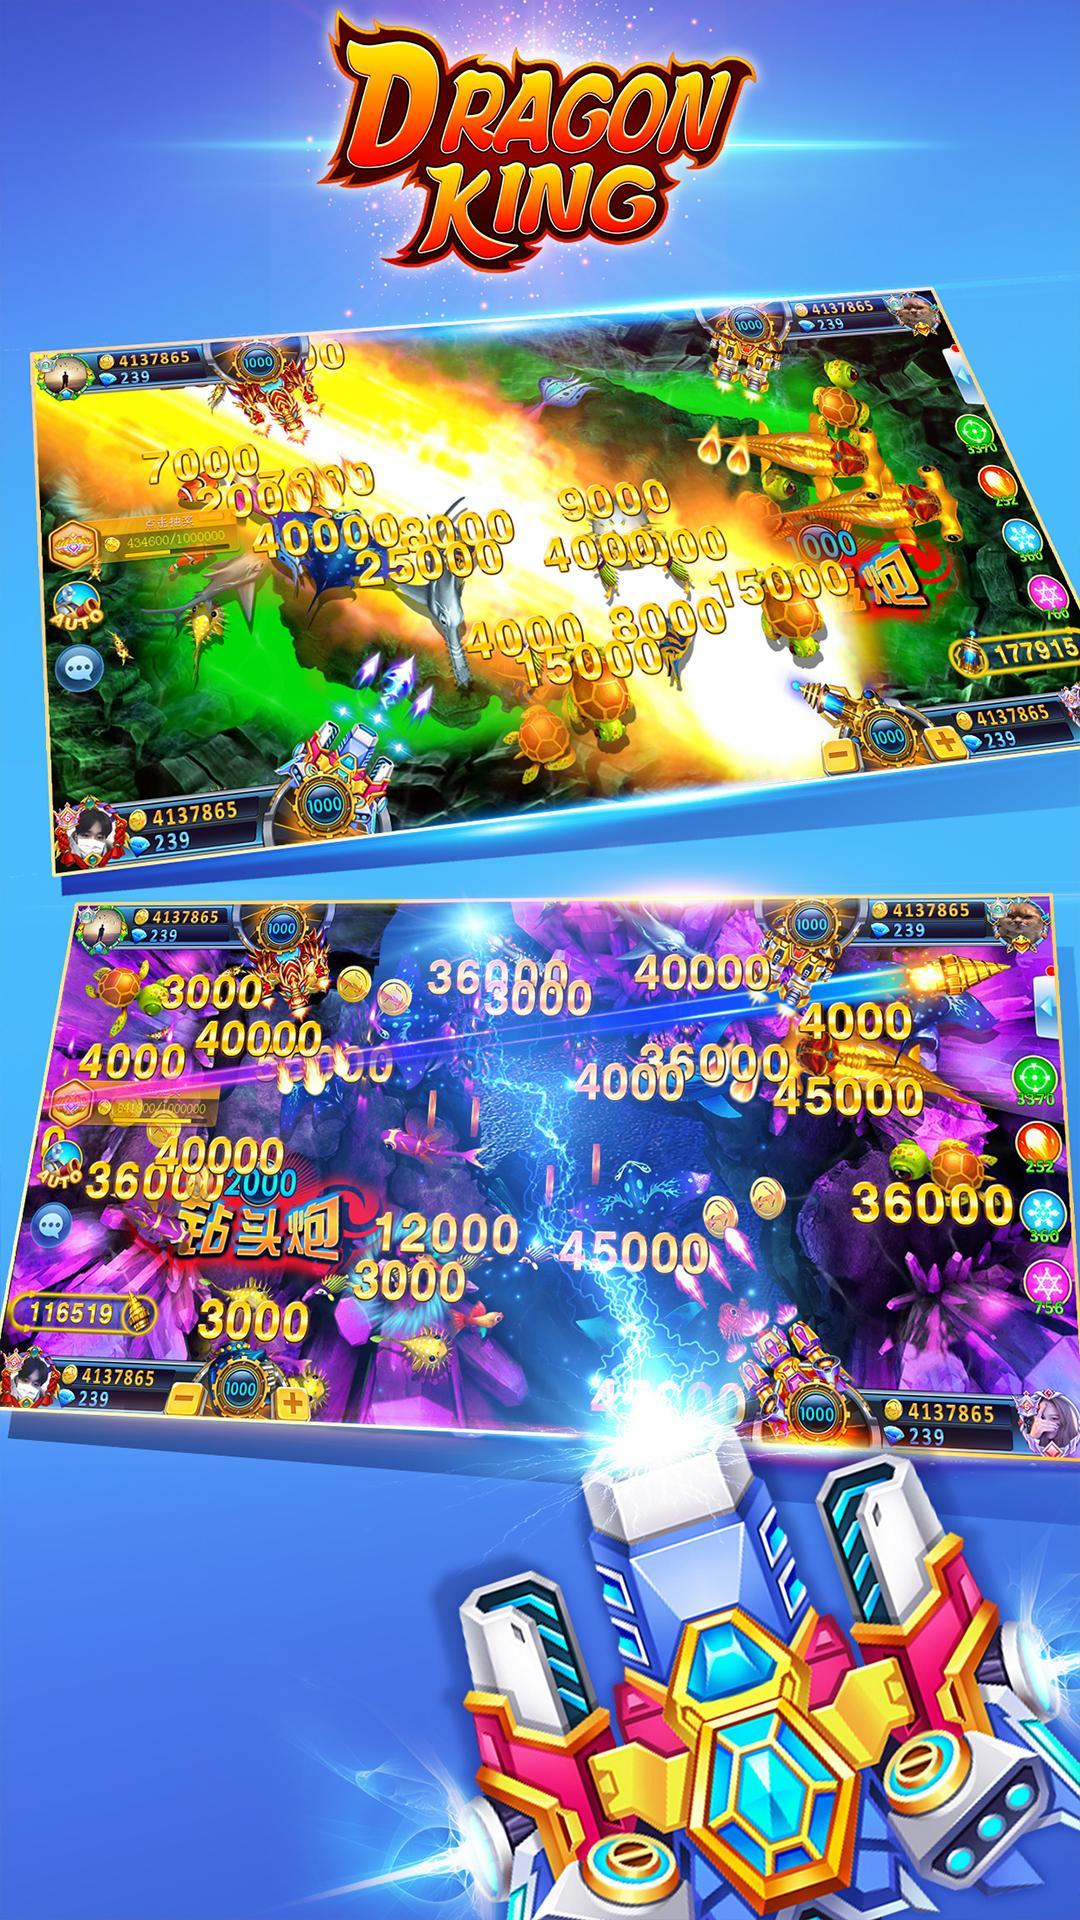 Dragon King Fishing Online-Arcade  Fish Games 5.2.0 Screenshot 3